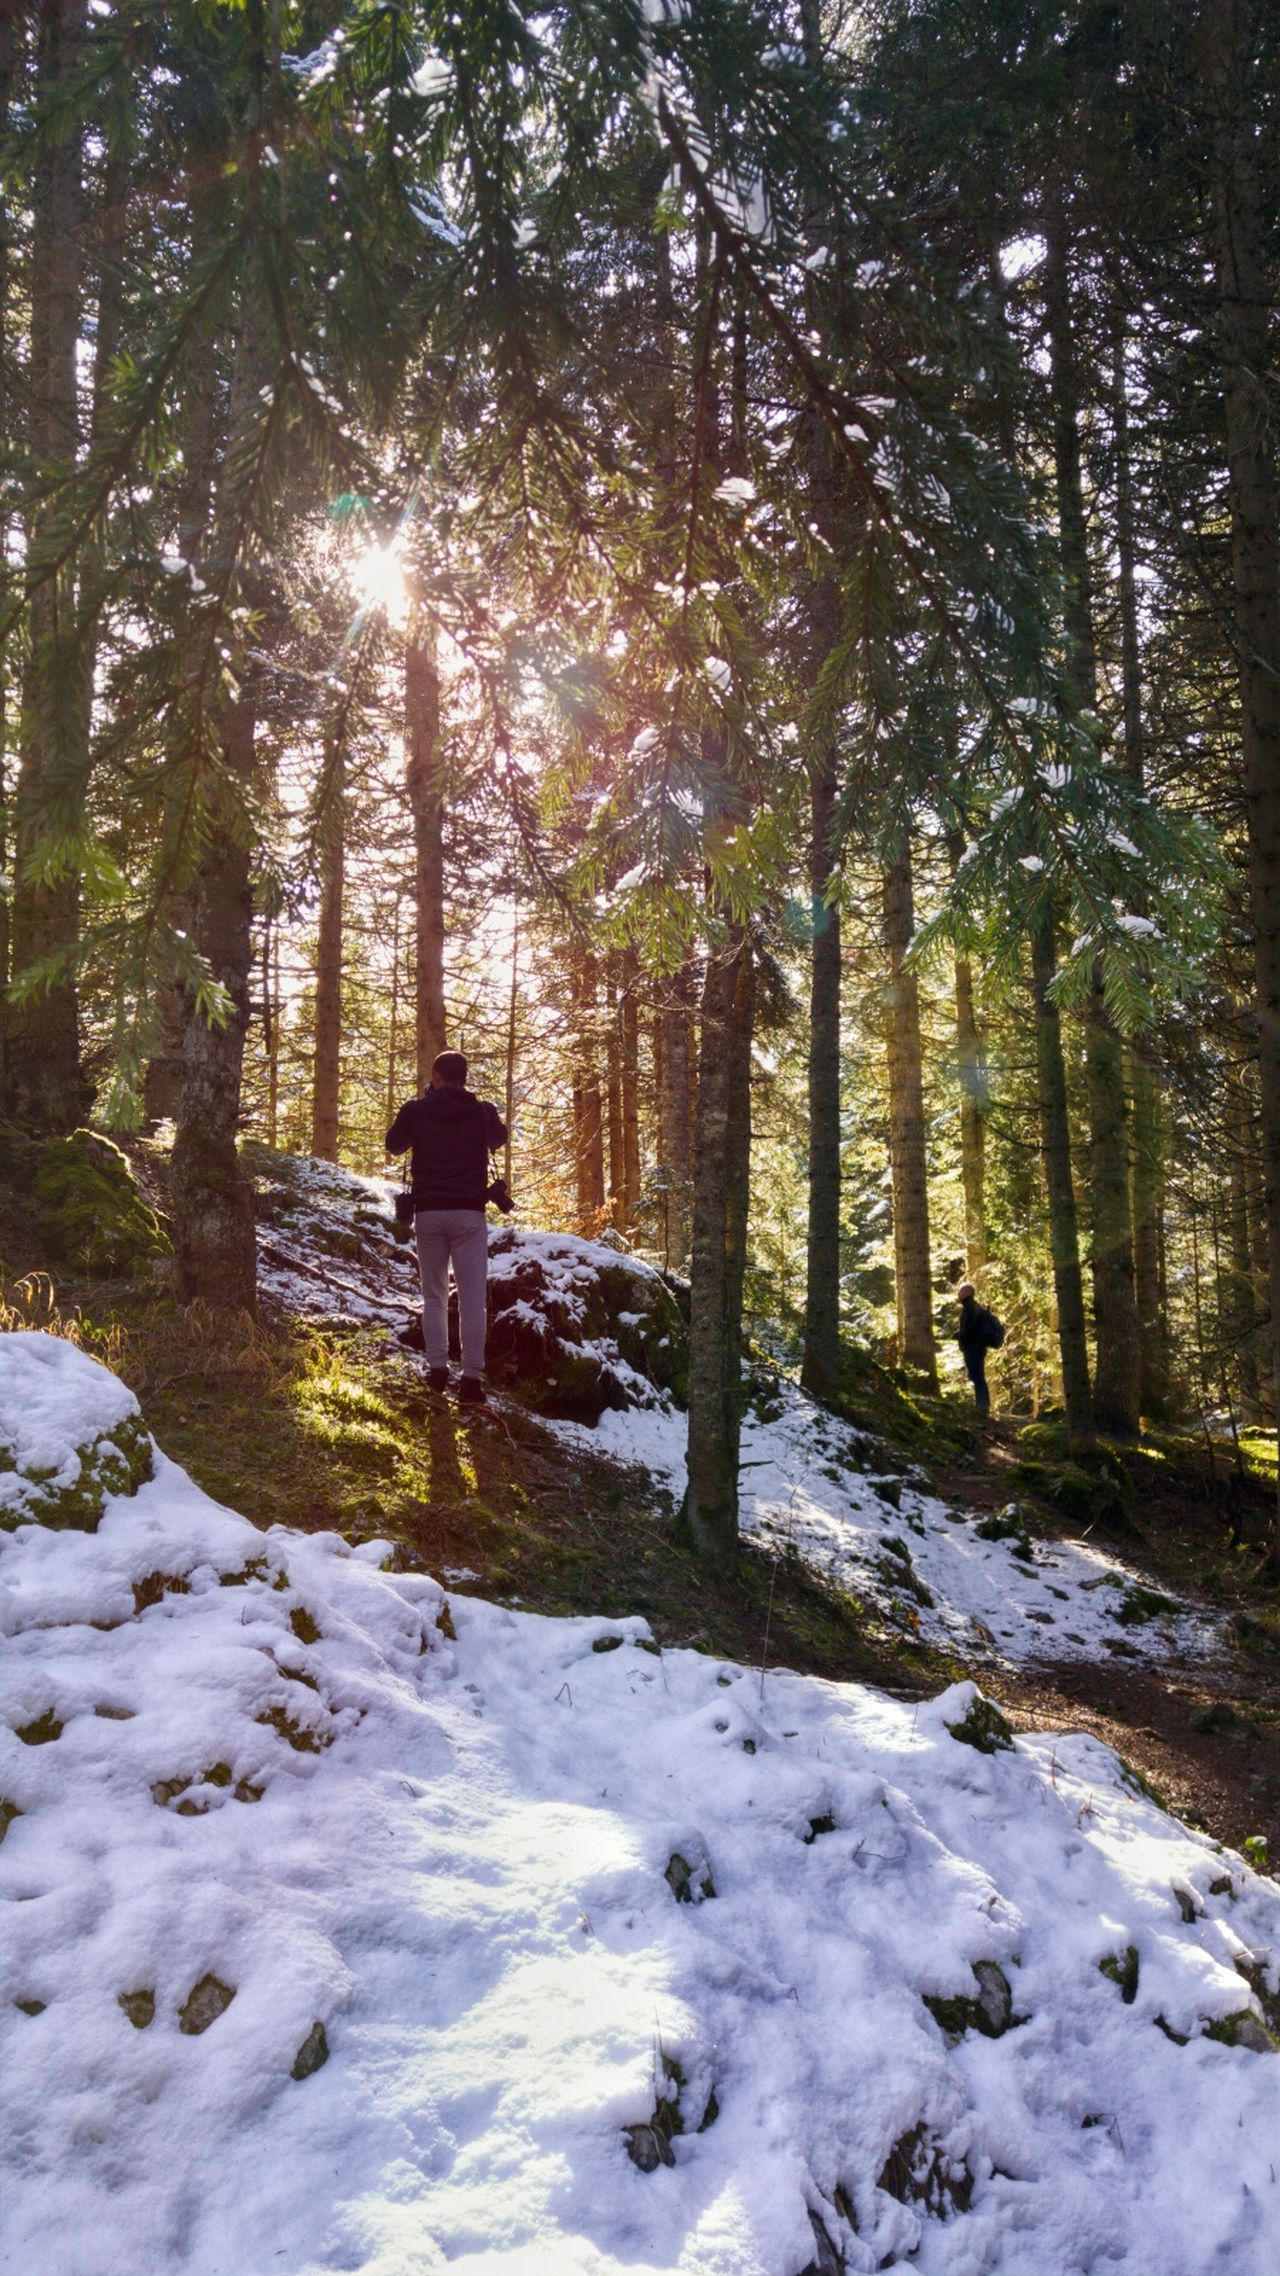 Tourists travel to winter forest with sunlight. Winter vacations. Beauty In Nature Cold Temperature EyeEm Best Edits EyeEm Best Shots EyeEm Best Shots - Nature EyeEm Nature Lover EyeEm Travel Photography Forest Forest Photography Landscape Nature Outdoors Pine Forest Scenics Snow Sunlight Sunlight Tourism Tourists Tree Winter Winter Trees